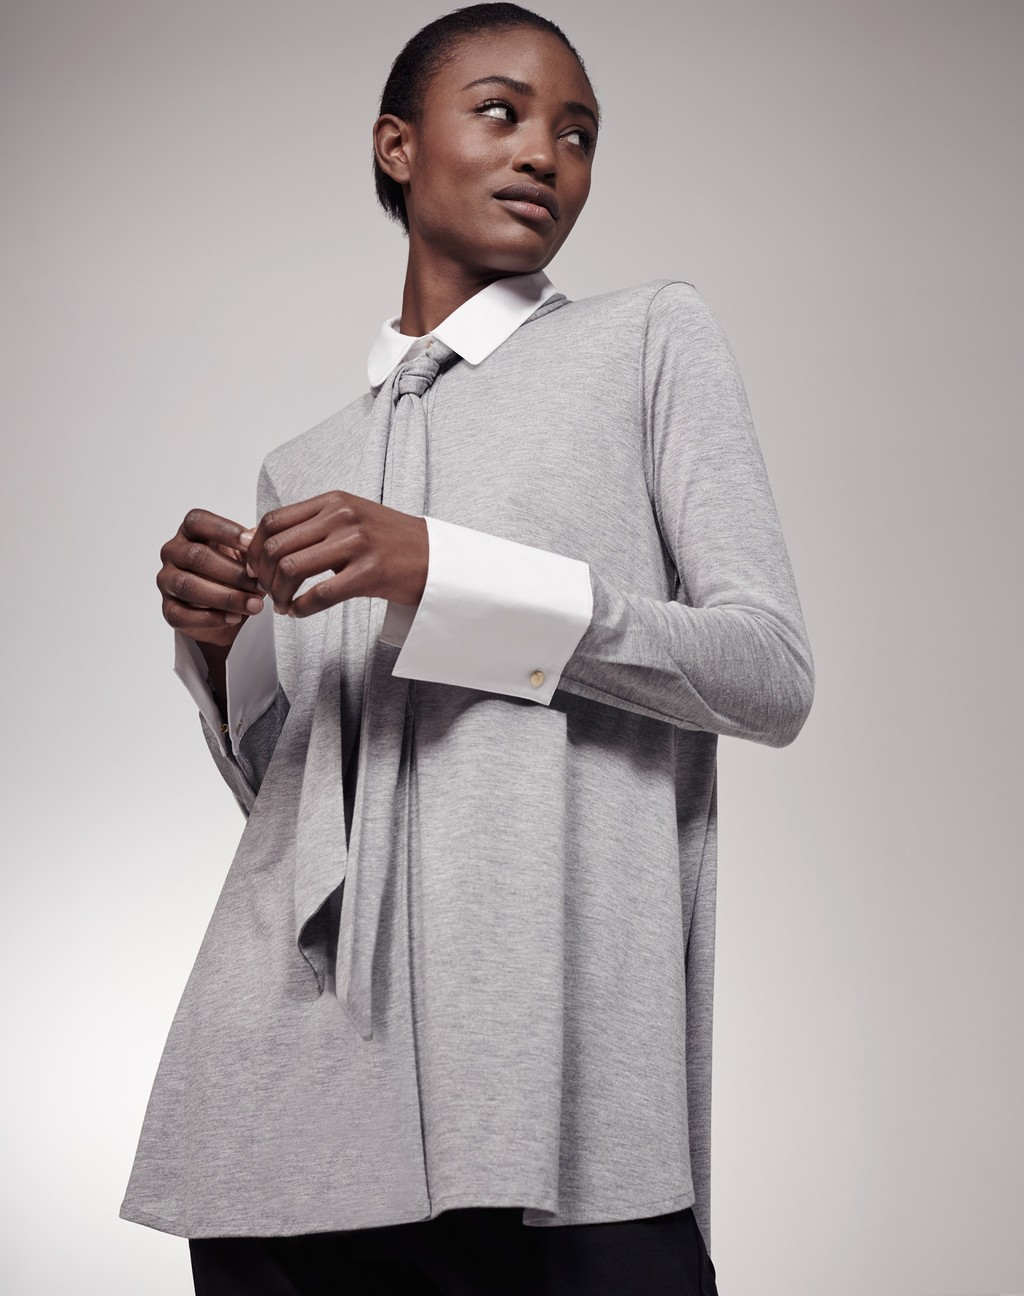 Swing Jersey Shirt Grey/White - length: below the bottom; style: shirt; neckline: pussy bow; secondary colour: white; predominant colour: mid grey; occasions: casual, creative work; fibres: polyester/polyamide - stretch; fit: loose; sleeve length: long sleeve; sleeve style: standard; pattern type: fabric; pattern size: standard; pattern: colourblock; texture group: jersey - stretchy/drapey; season: s/s 2016; wardrobe: highlight